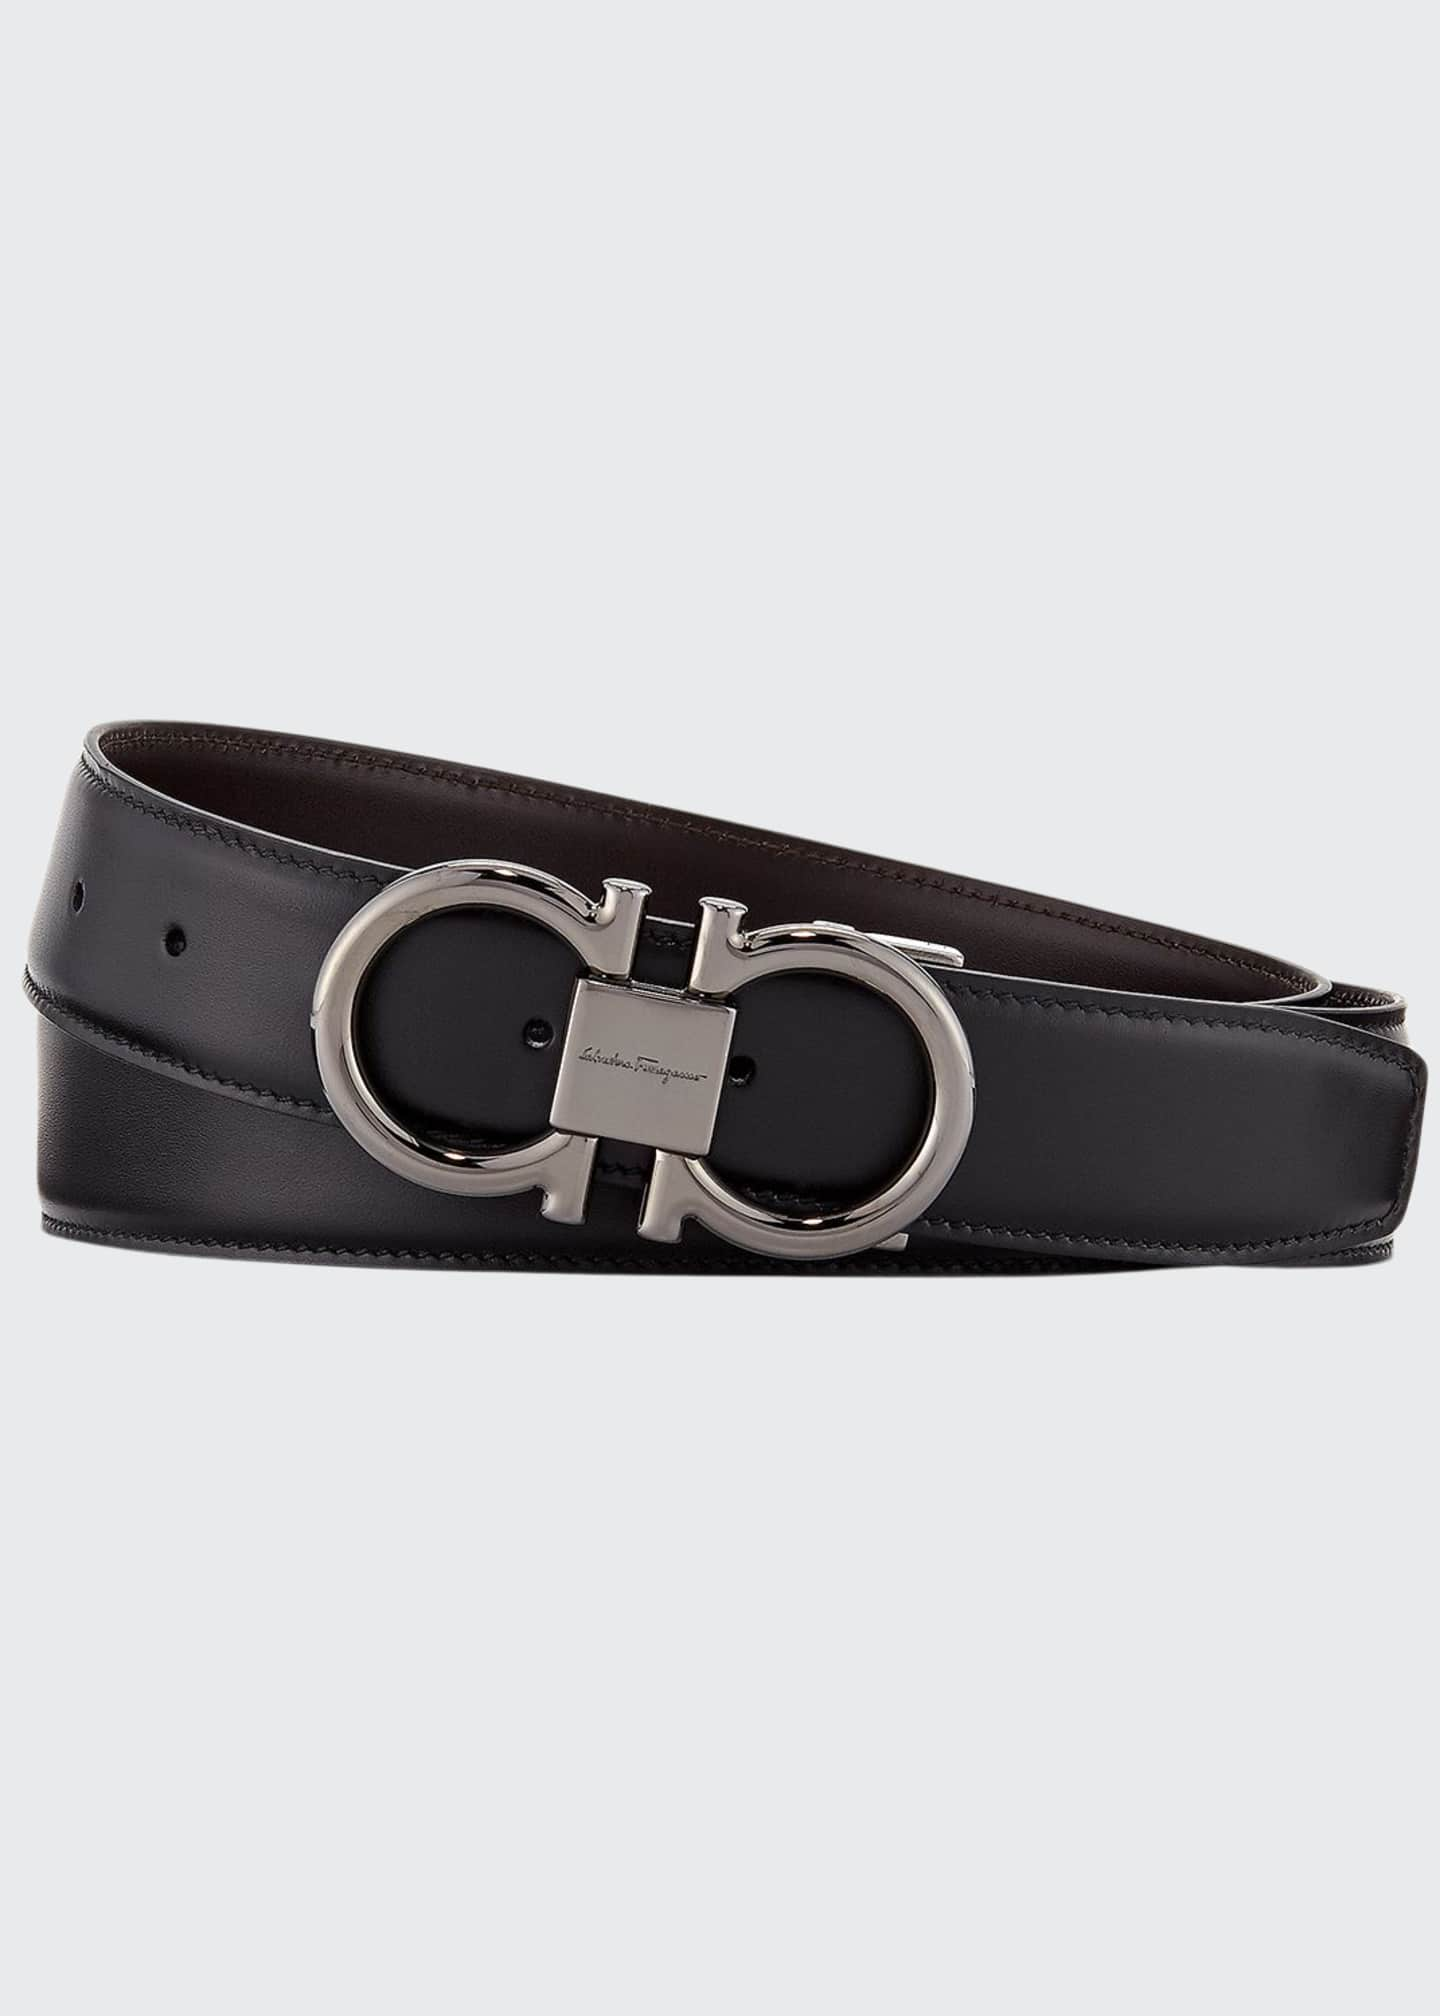 Image 1 of 1: Men's Double-Gancini Reversible Leather Belt